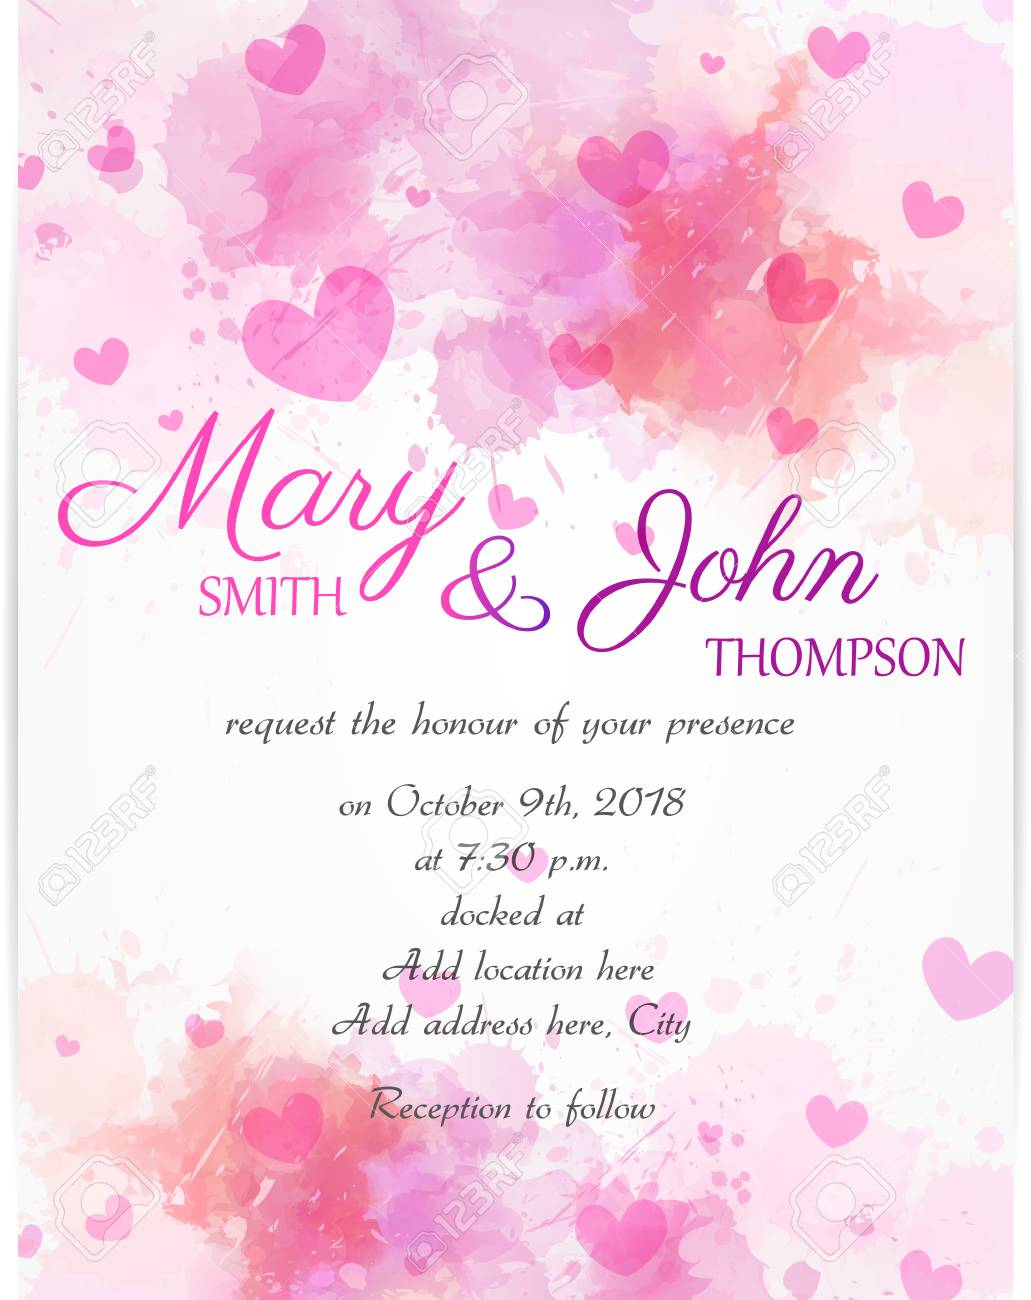 vector wedding invitation template with pink hearts on watercolor background